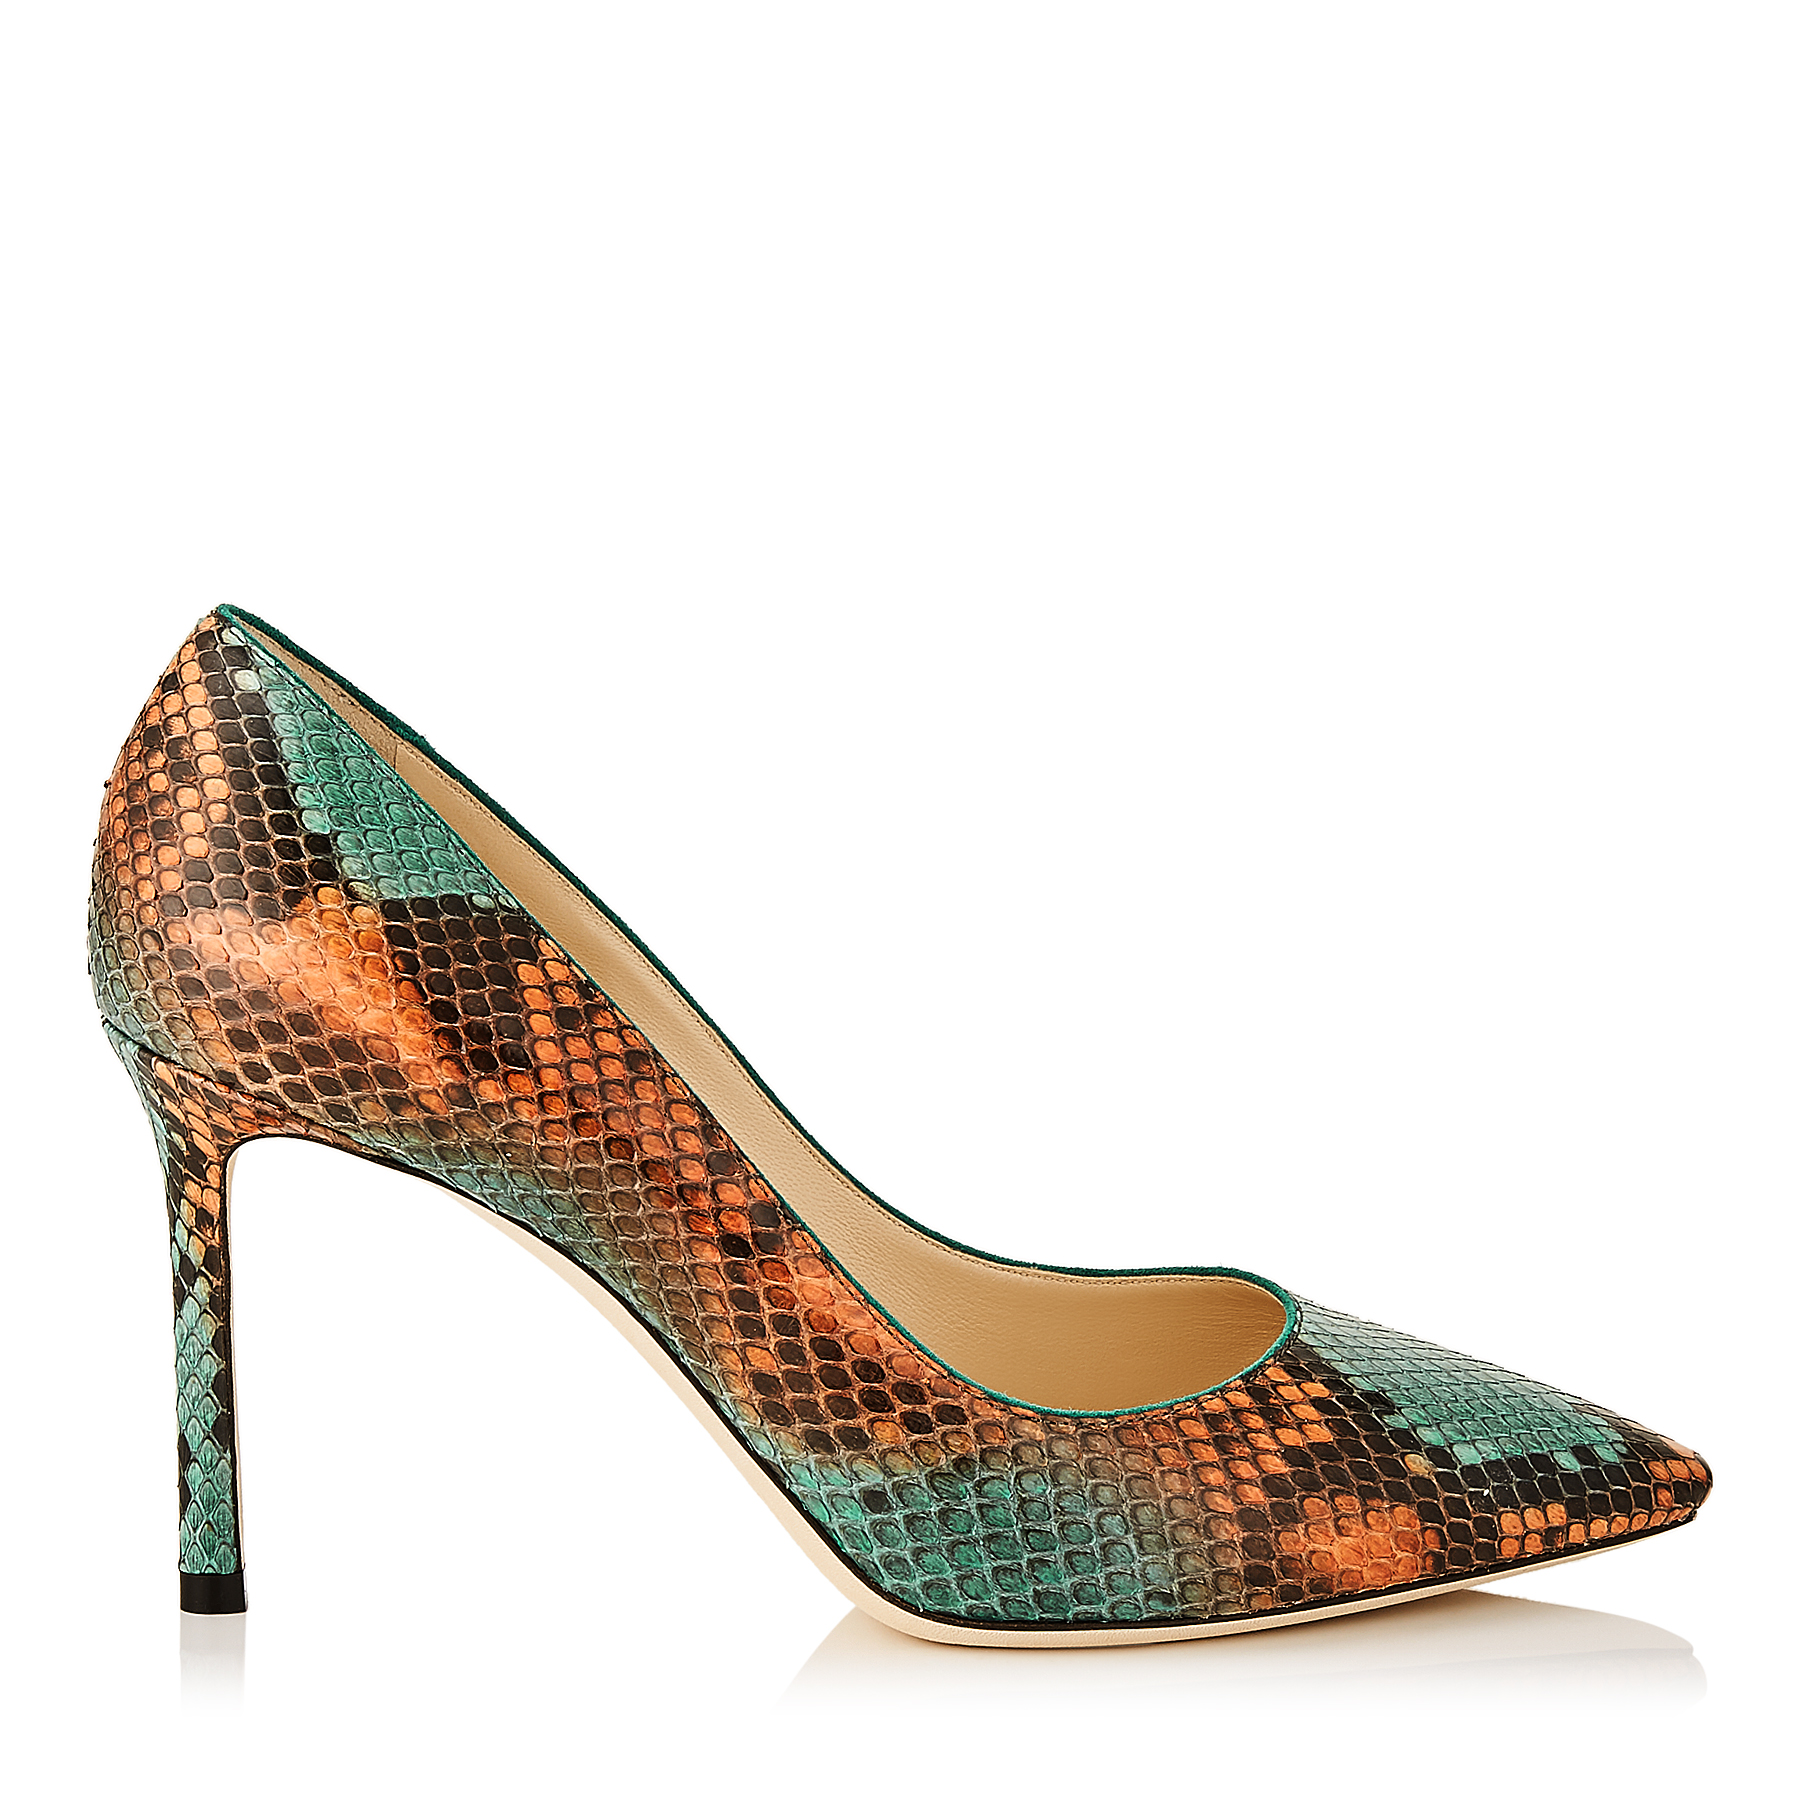 Photo of ROMY 85 Calypso and Emerald Dégradé Painted Python Pointy Toe Pumps by Jimmy Choo womens shoes - buy Jimmy Choo footwear online